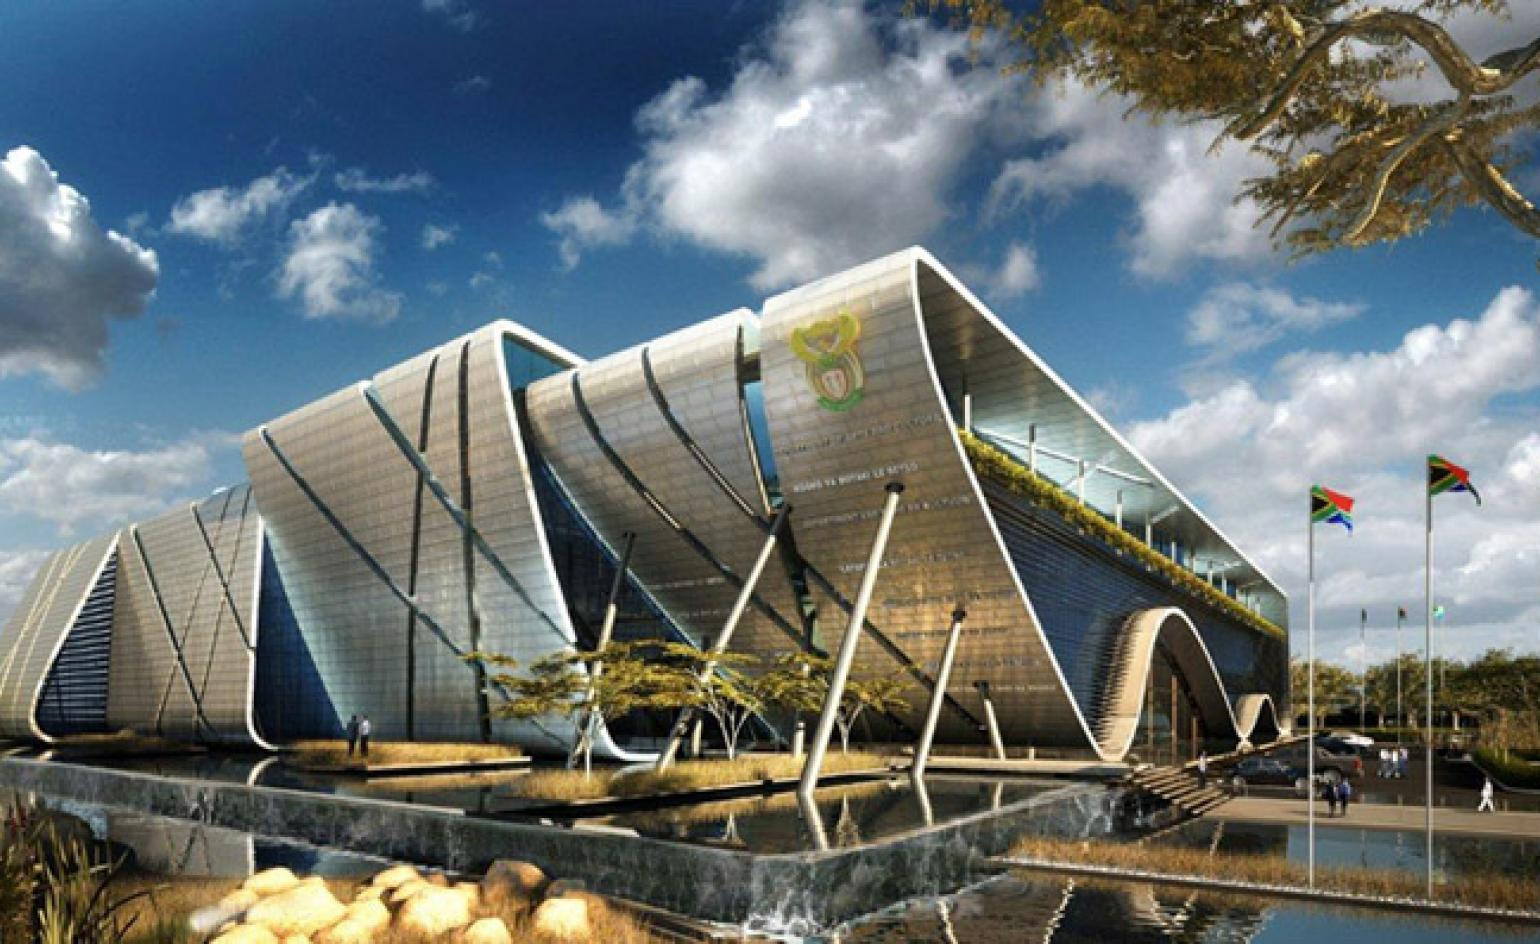 africa south african architects pretoria building architecture culture arts technology directory paragon architectural mimdap science department bir office bueyuek cgarchitect